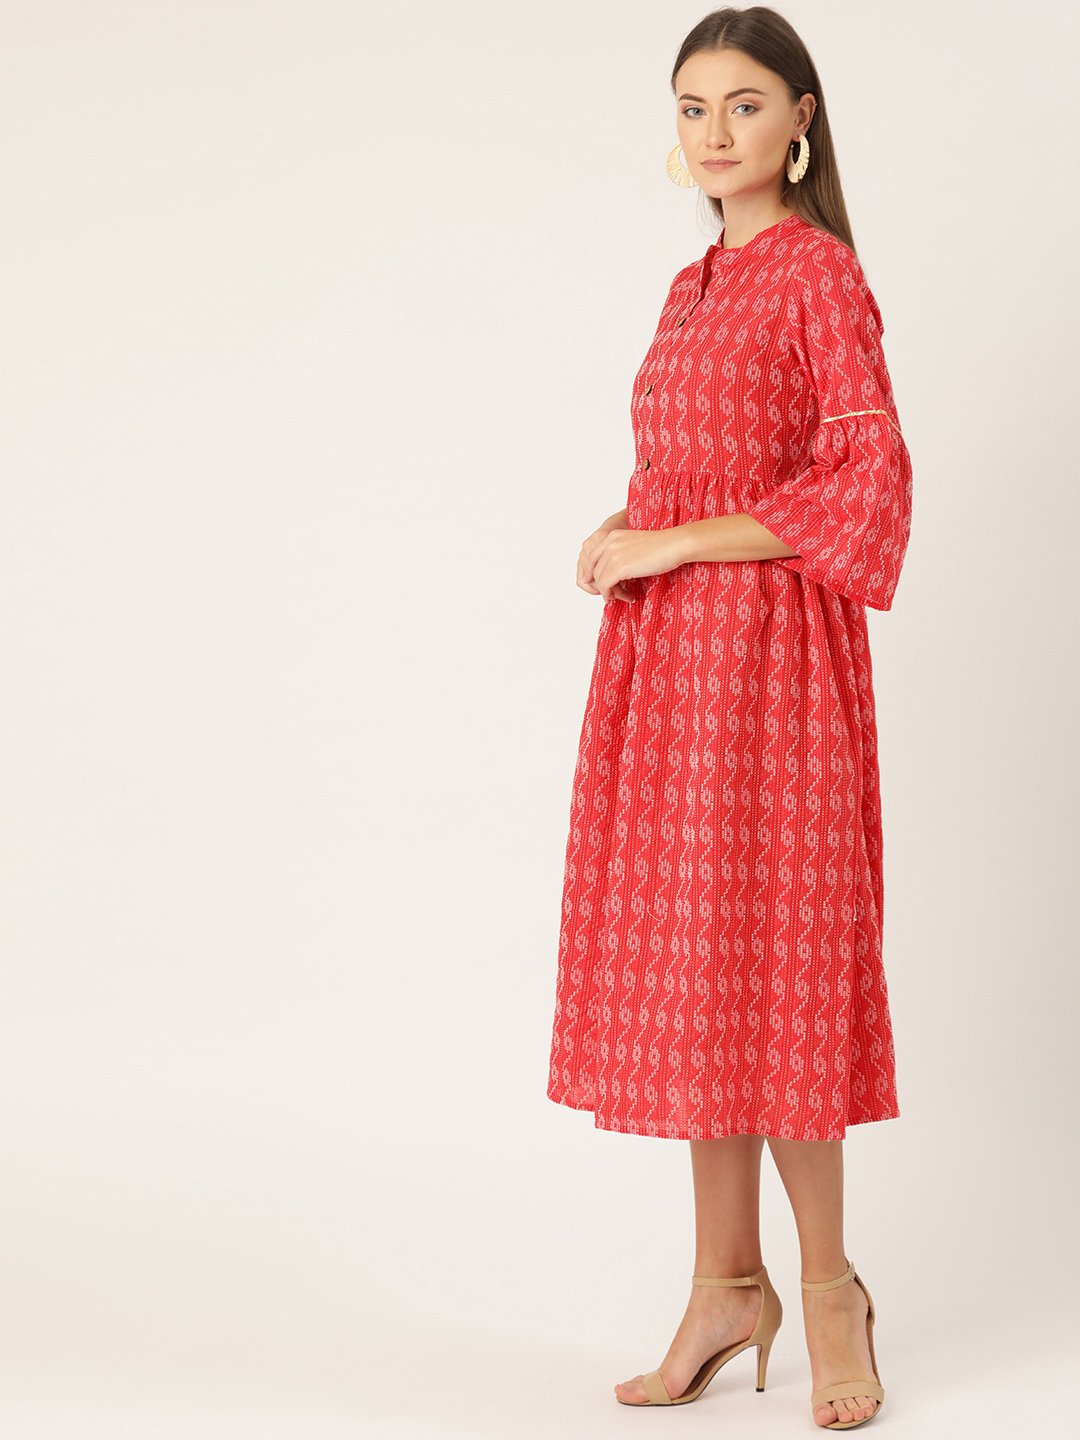 Red Kantha Dress